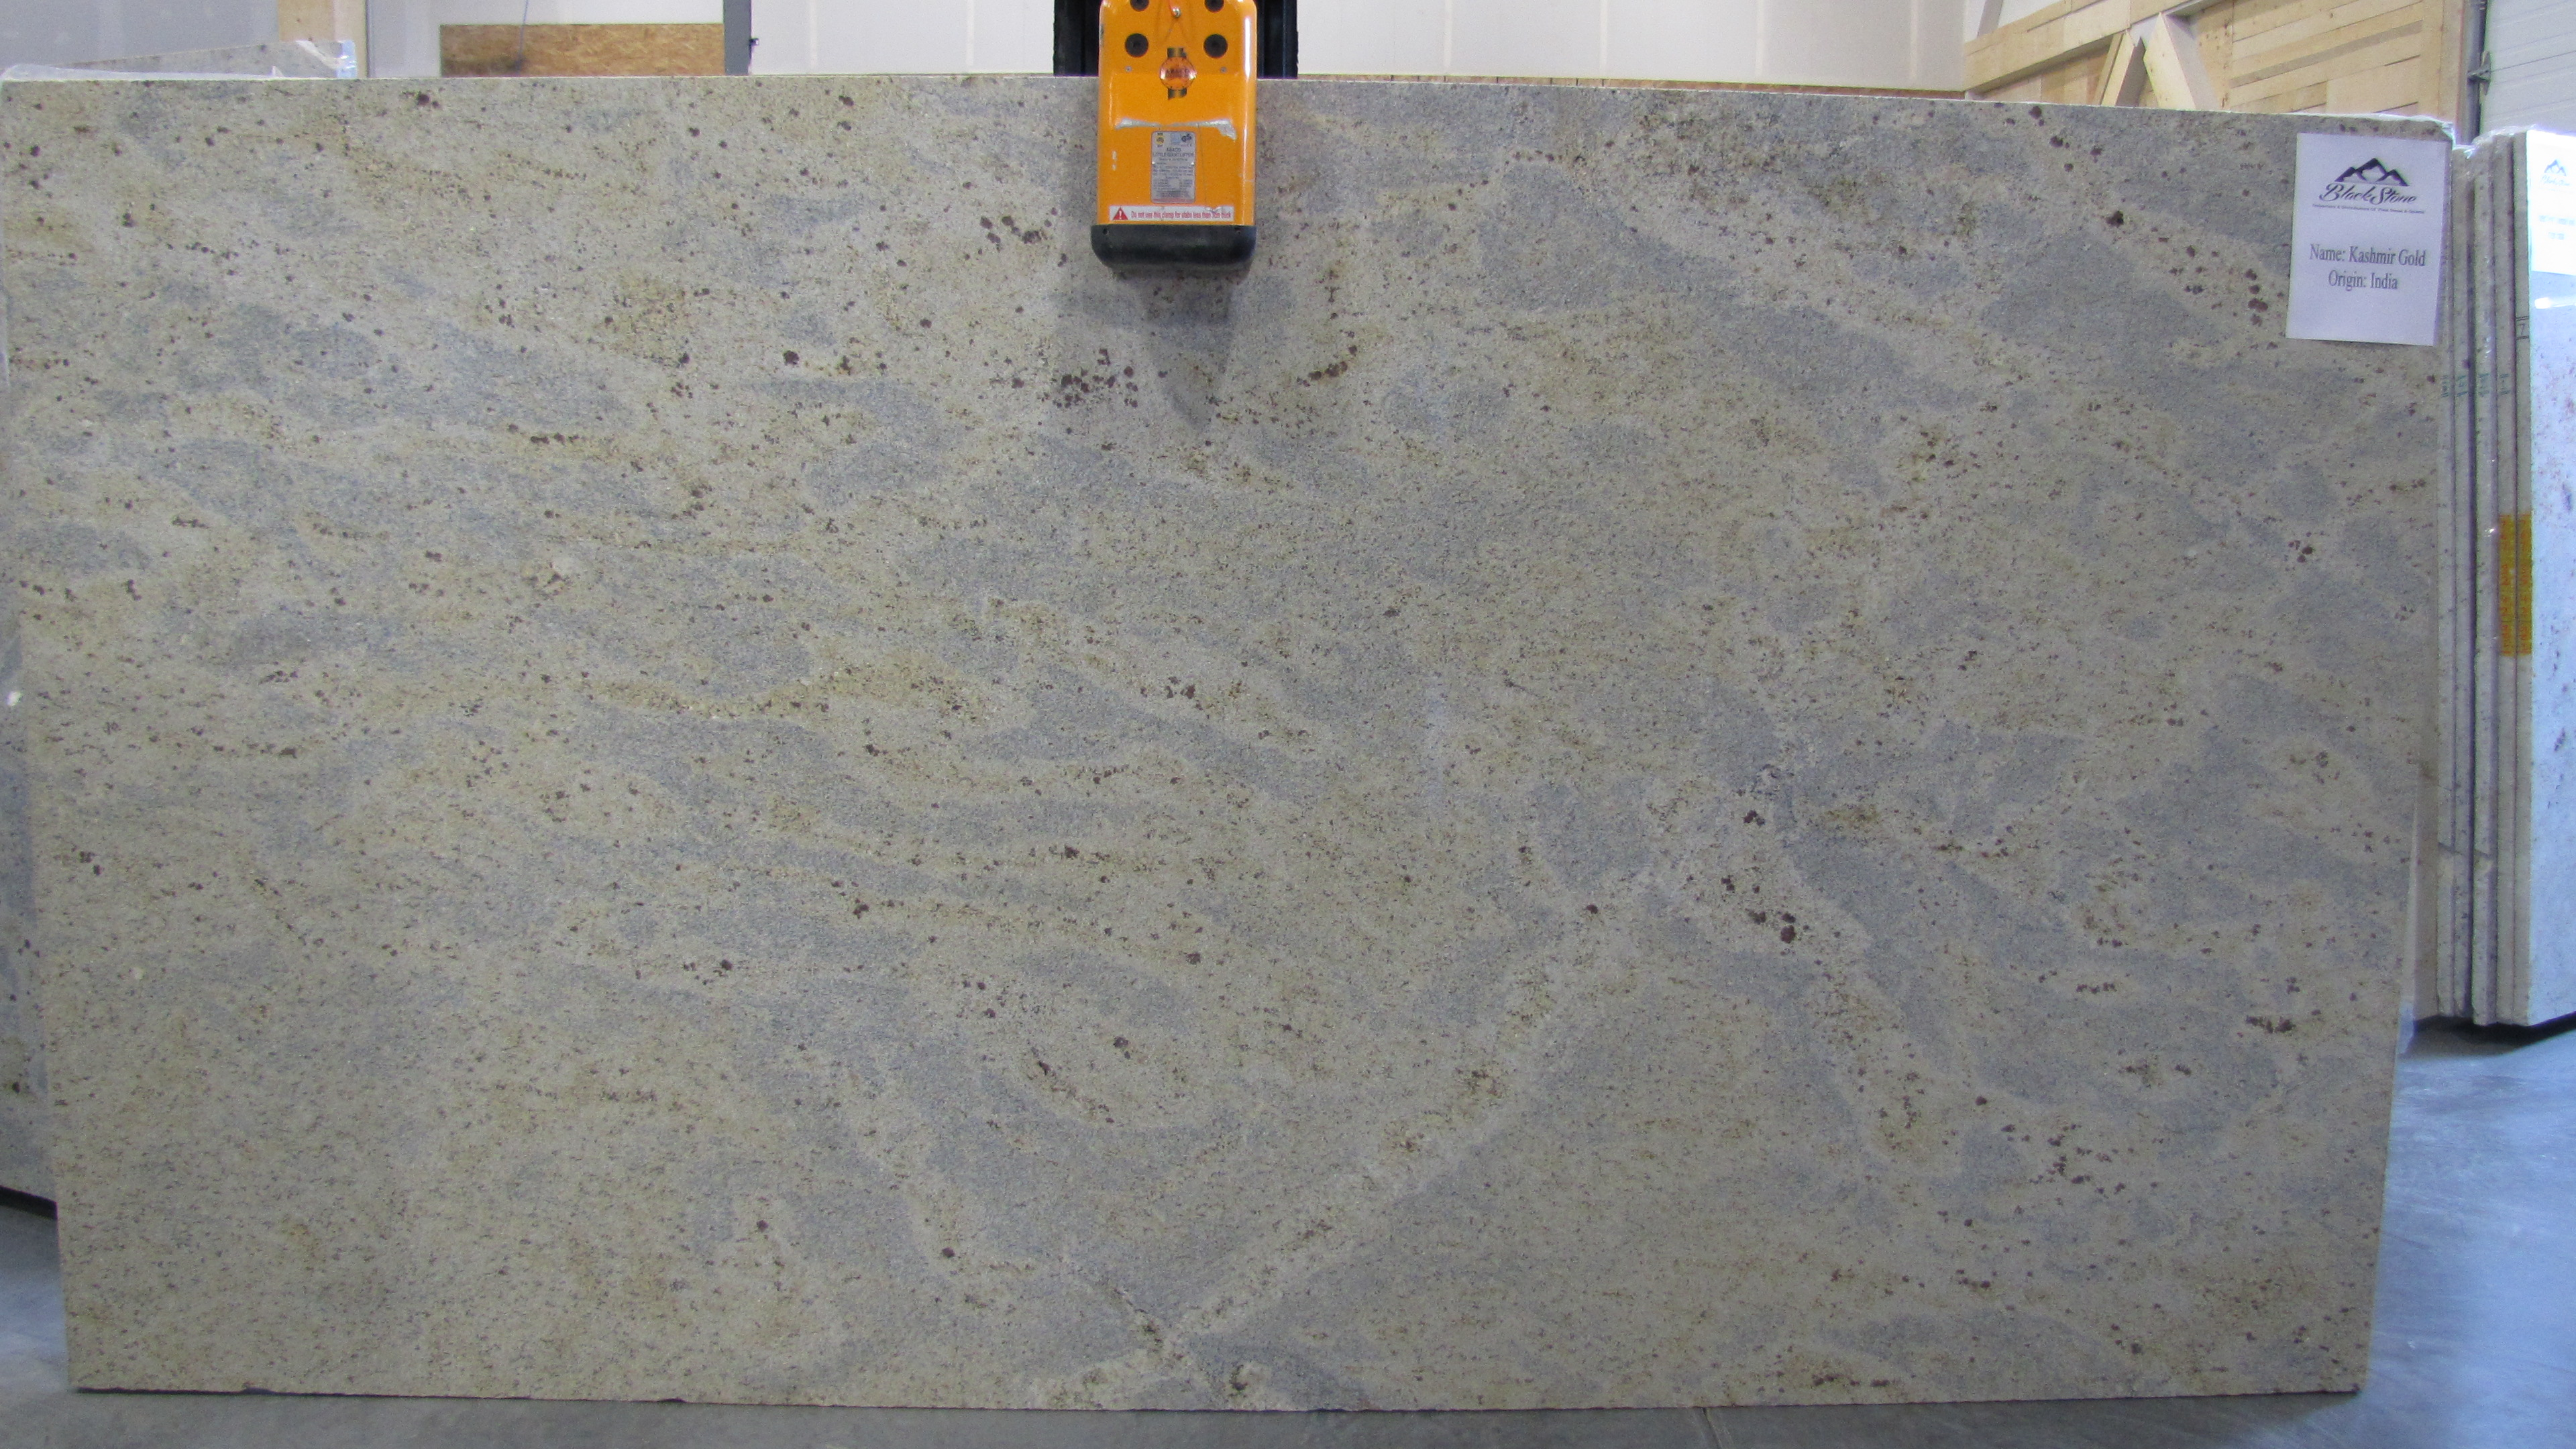 Kashmir Gold Granite Countertops Ottawa Granite Countertop Slabs Kashmir Gold Beautiful Gold